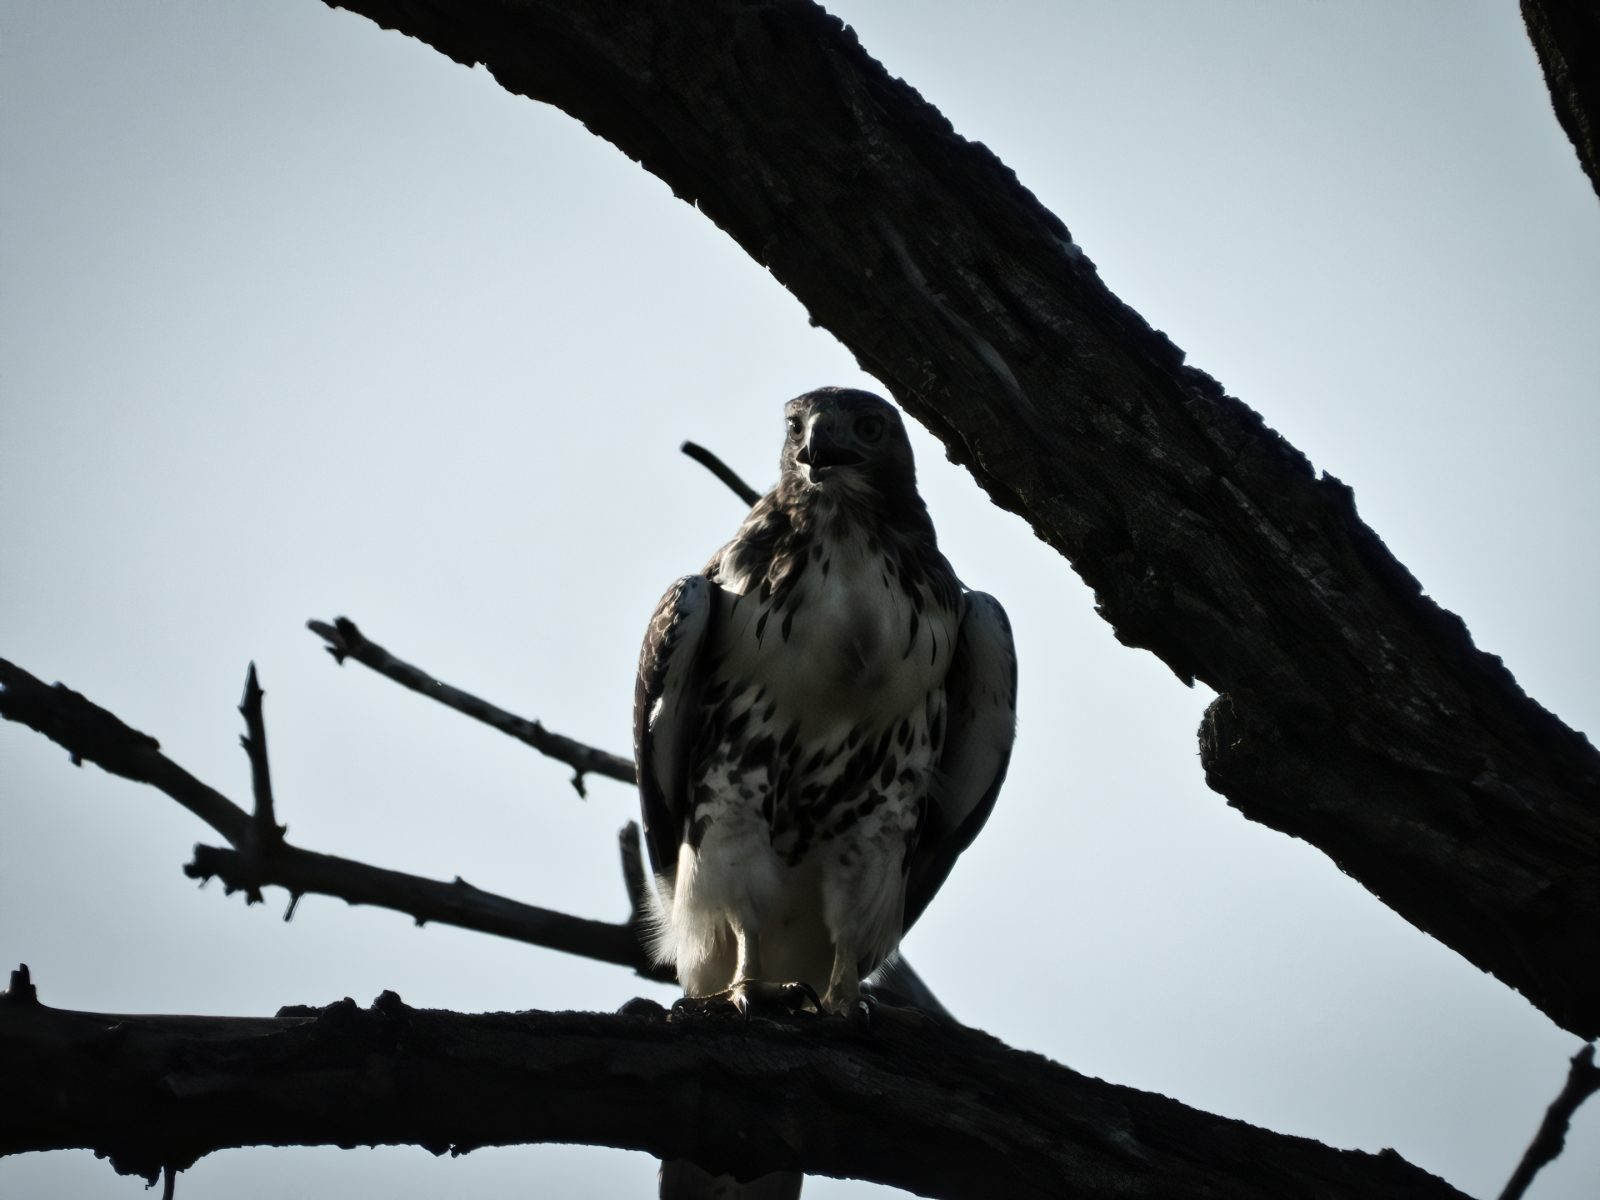 Red-Tailed Hawk Perched on Bare Tree Branch Calls Out